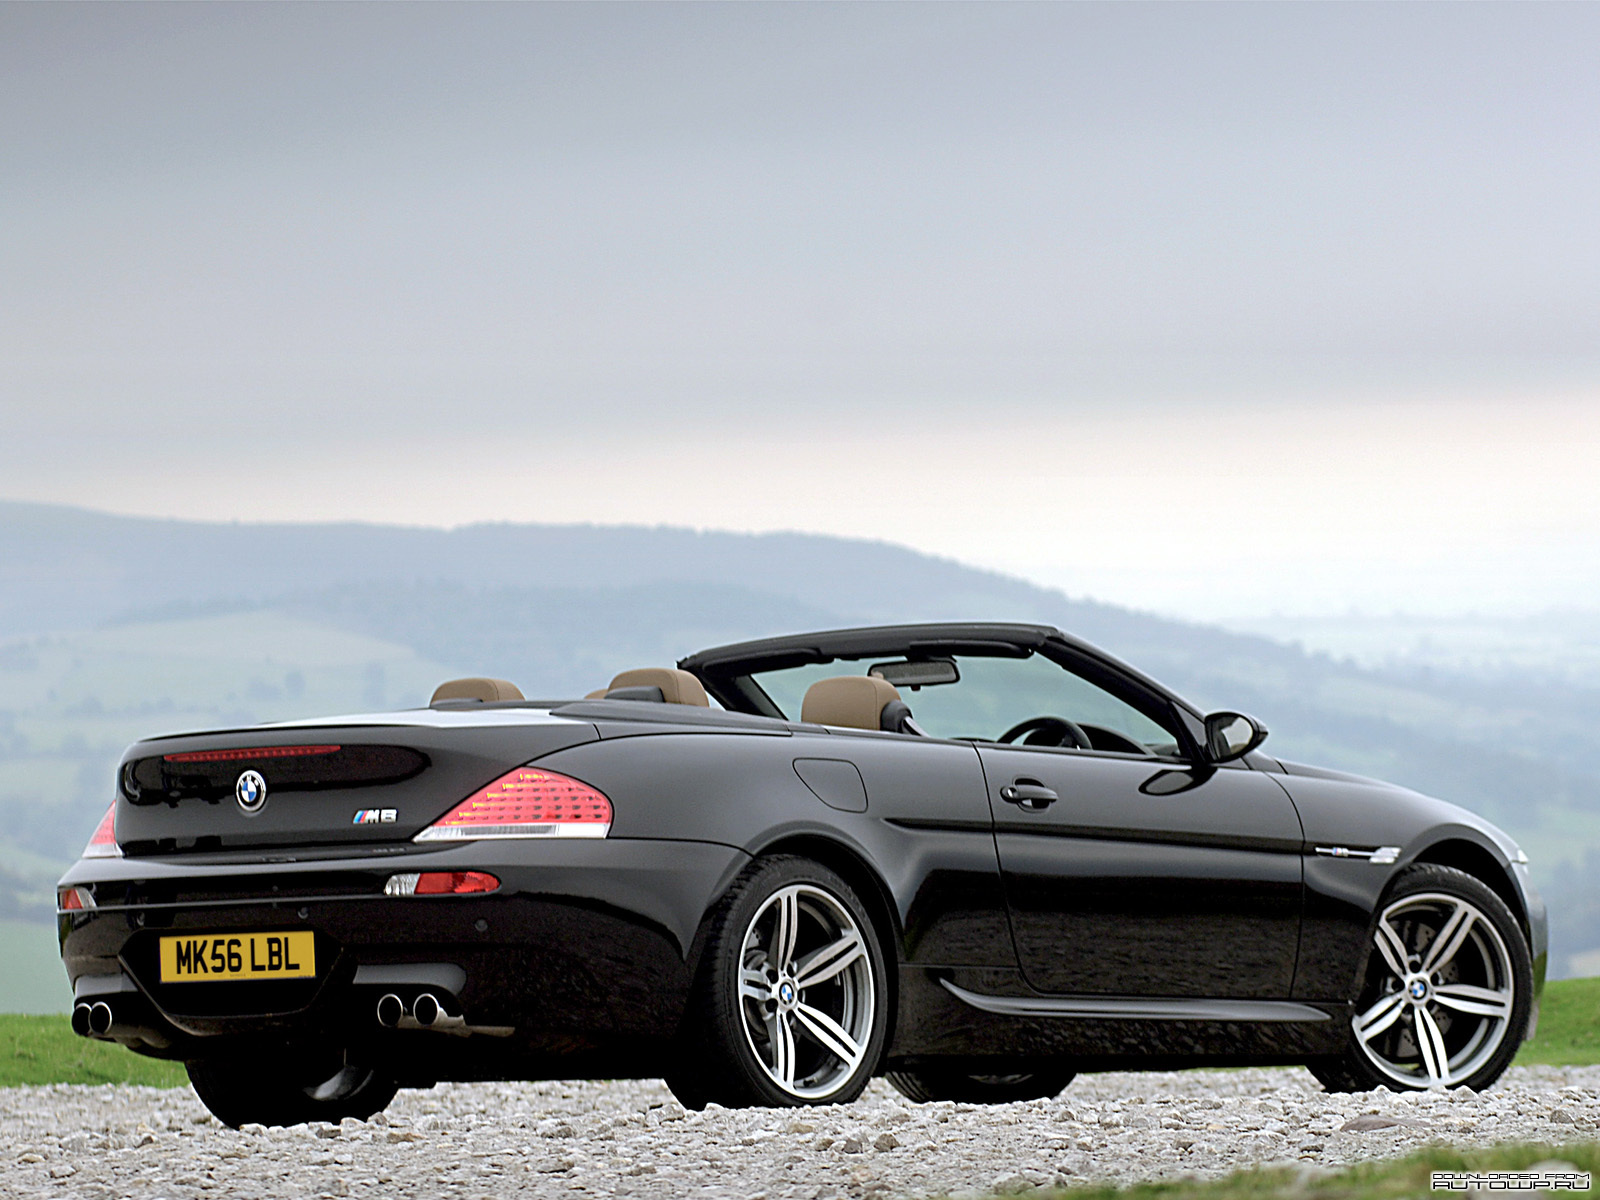 2018 Bmw M6 Convertible >> BMW M6 E64 Convertible photos - PhotoGallery with 46 pics| CarsBase.com